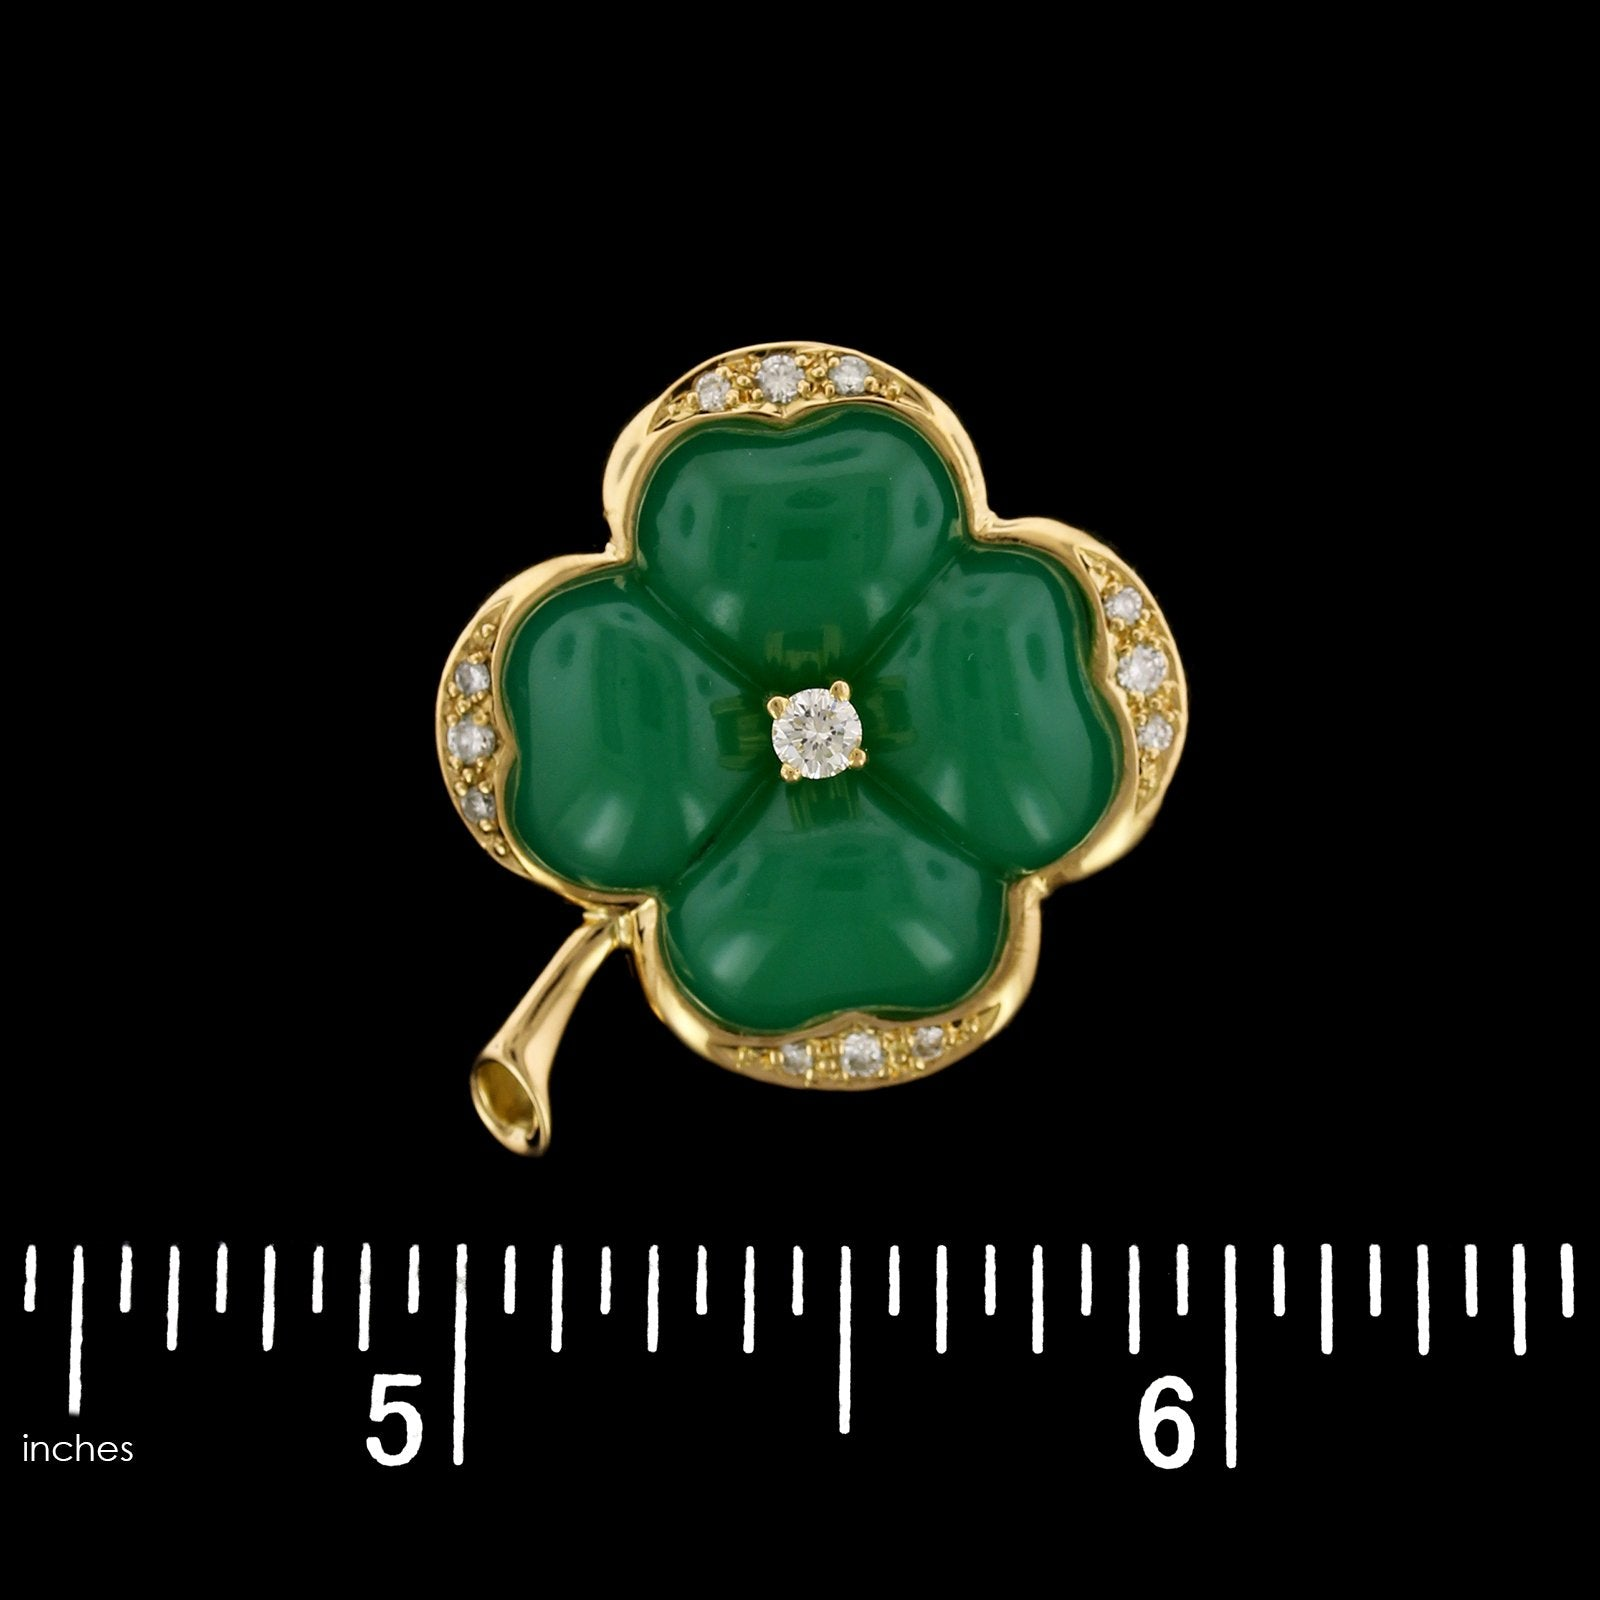 Luth Bijoux 18K Yellow Gold Estate Green Quartz and Diamond 4 Leaf Clover Pin/Pendant